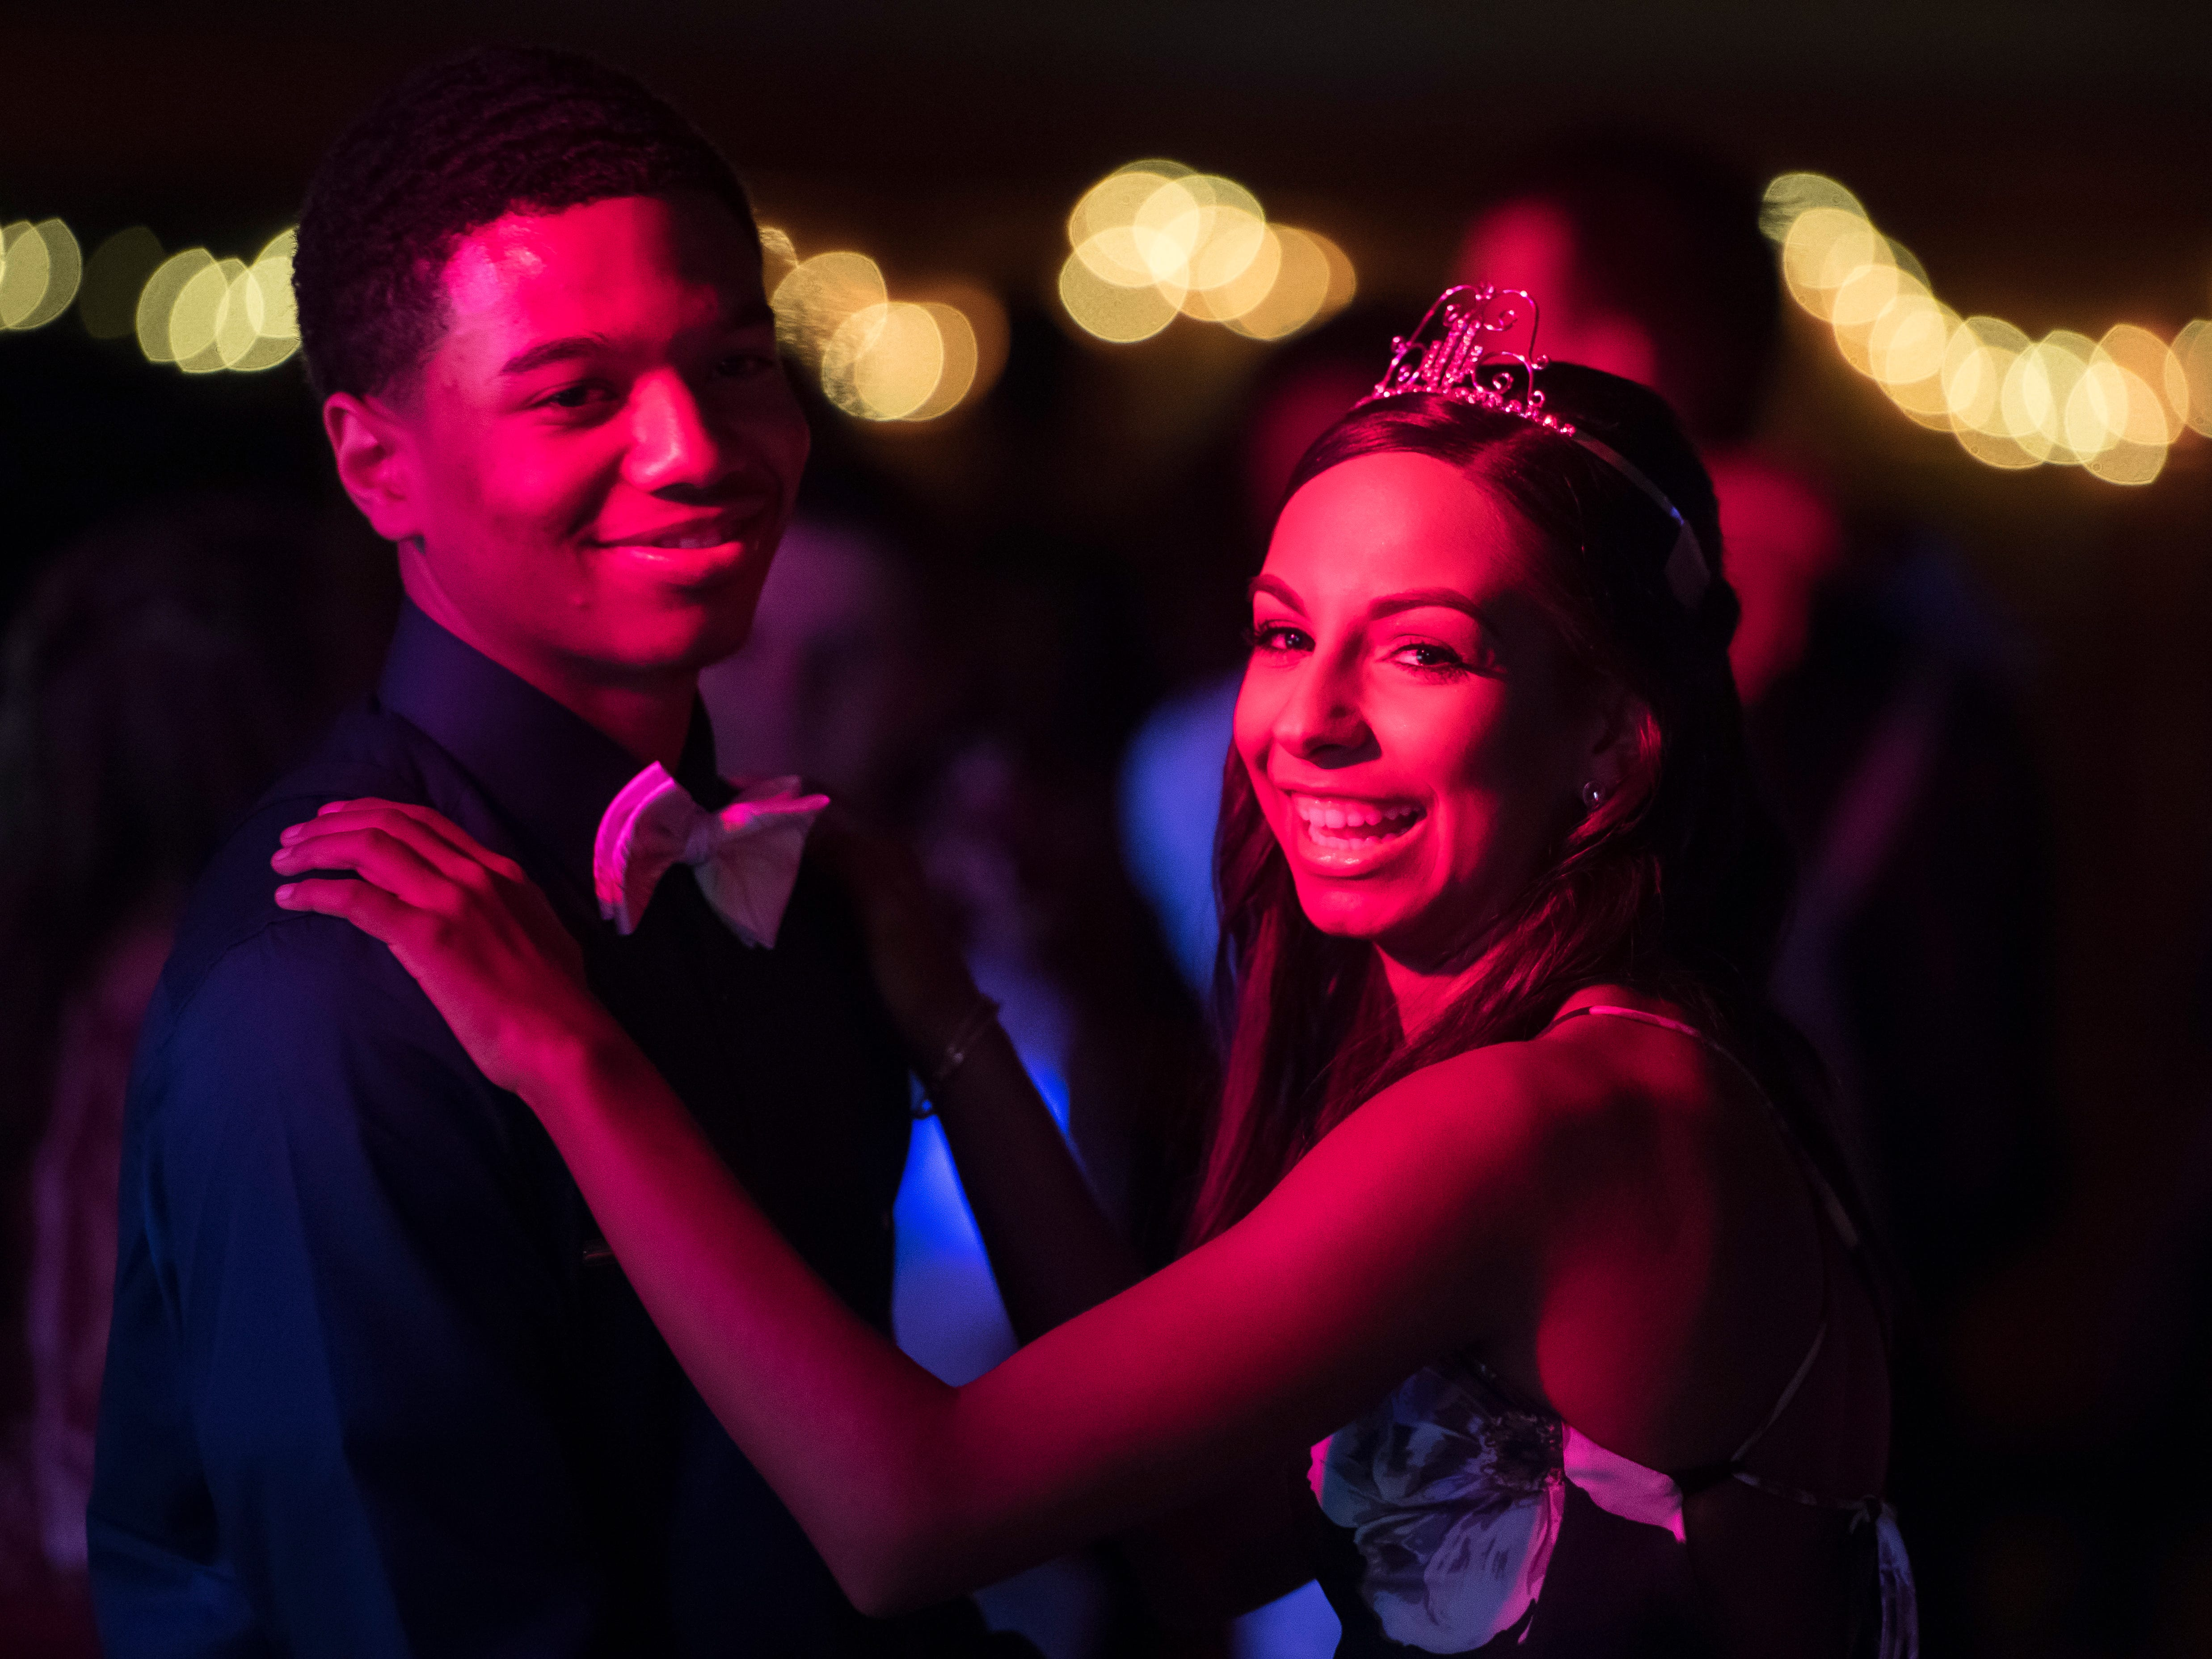 Hanover High School homecoming queen Elynda Garcia dances with Kwame Myers on Saturday, September 15, 2018.